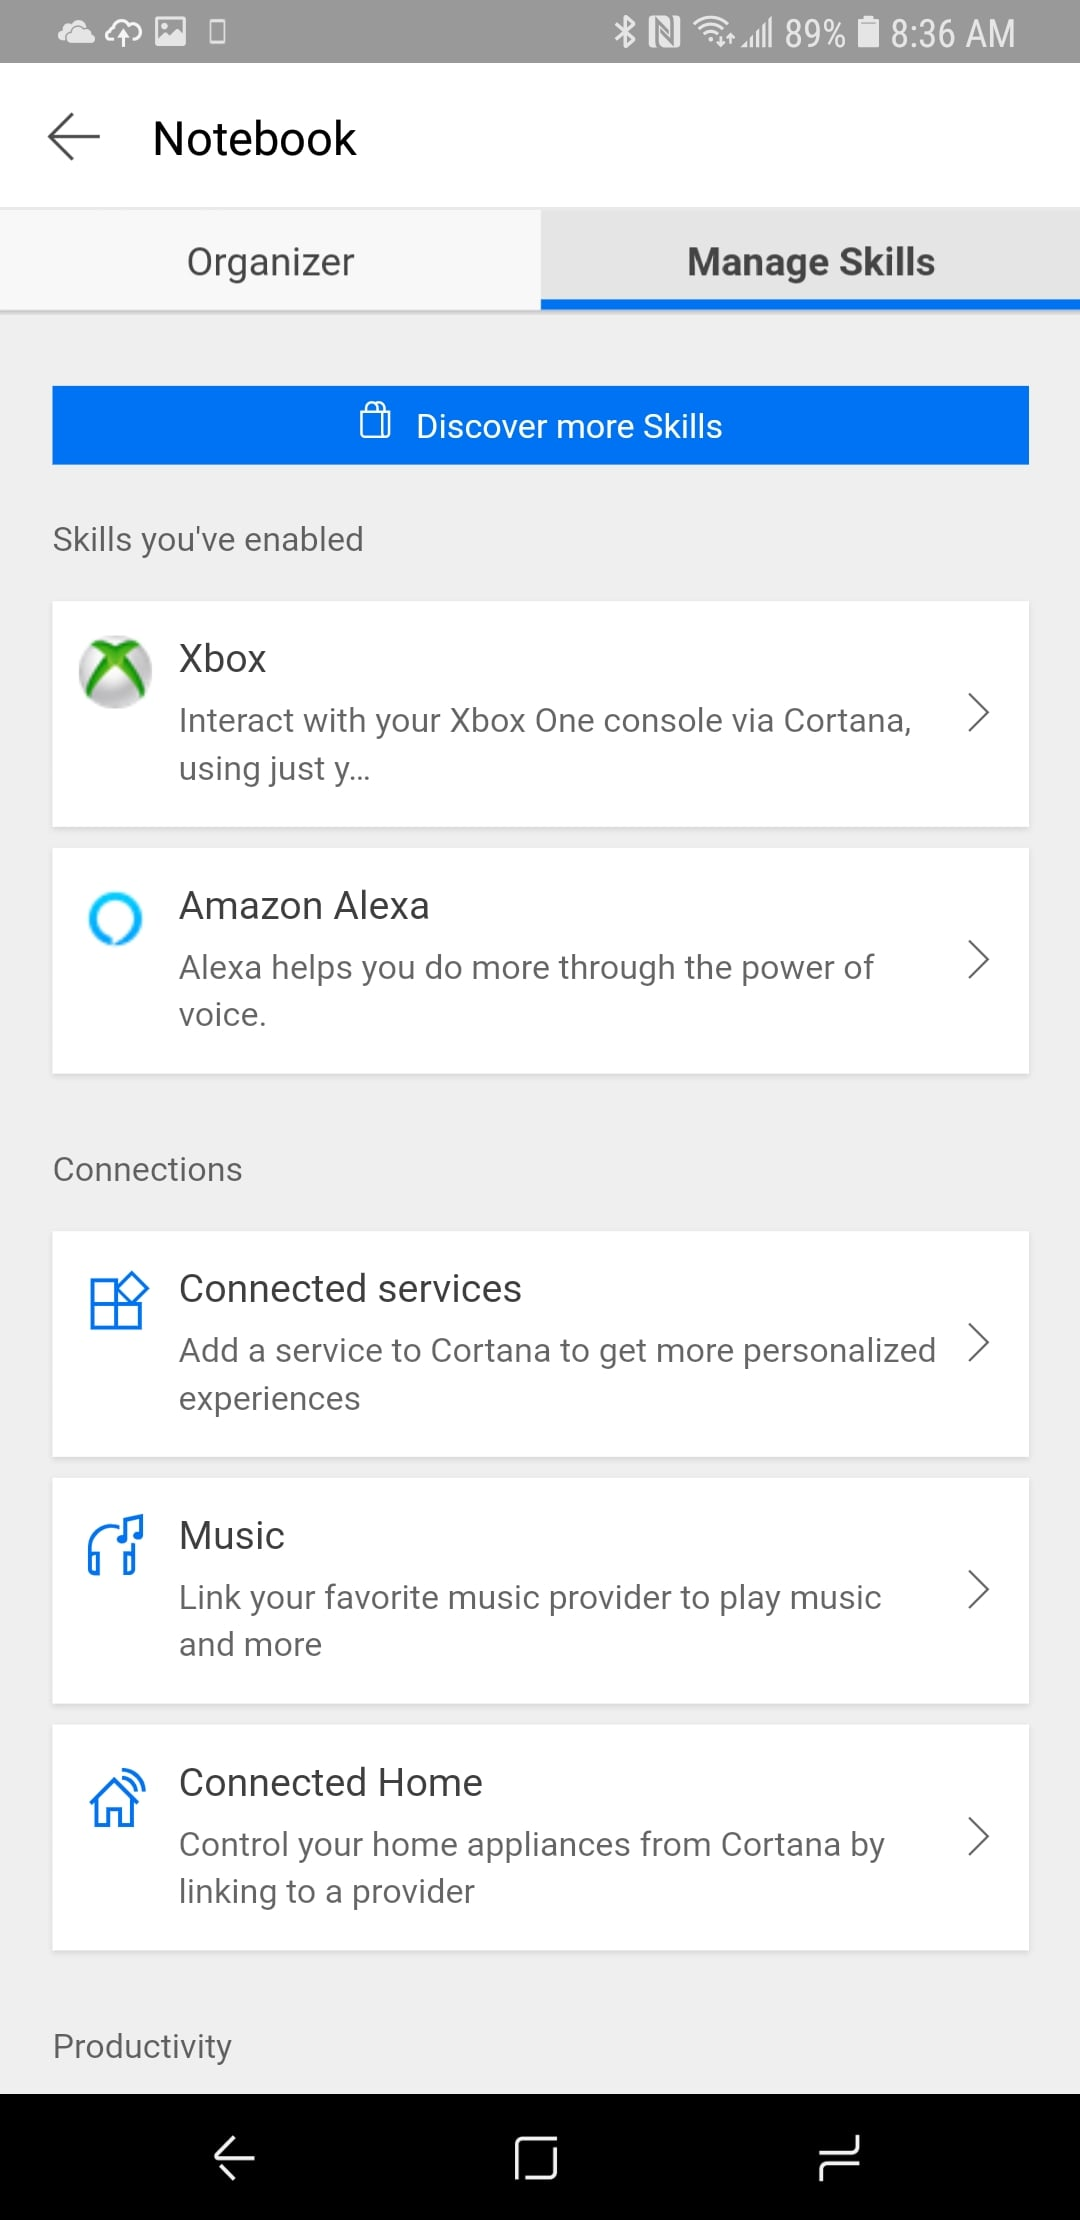 Cortana App 3.0 on Android